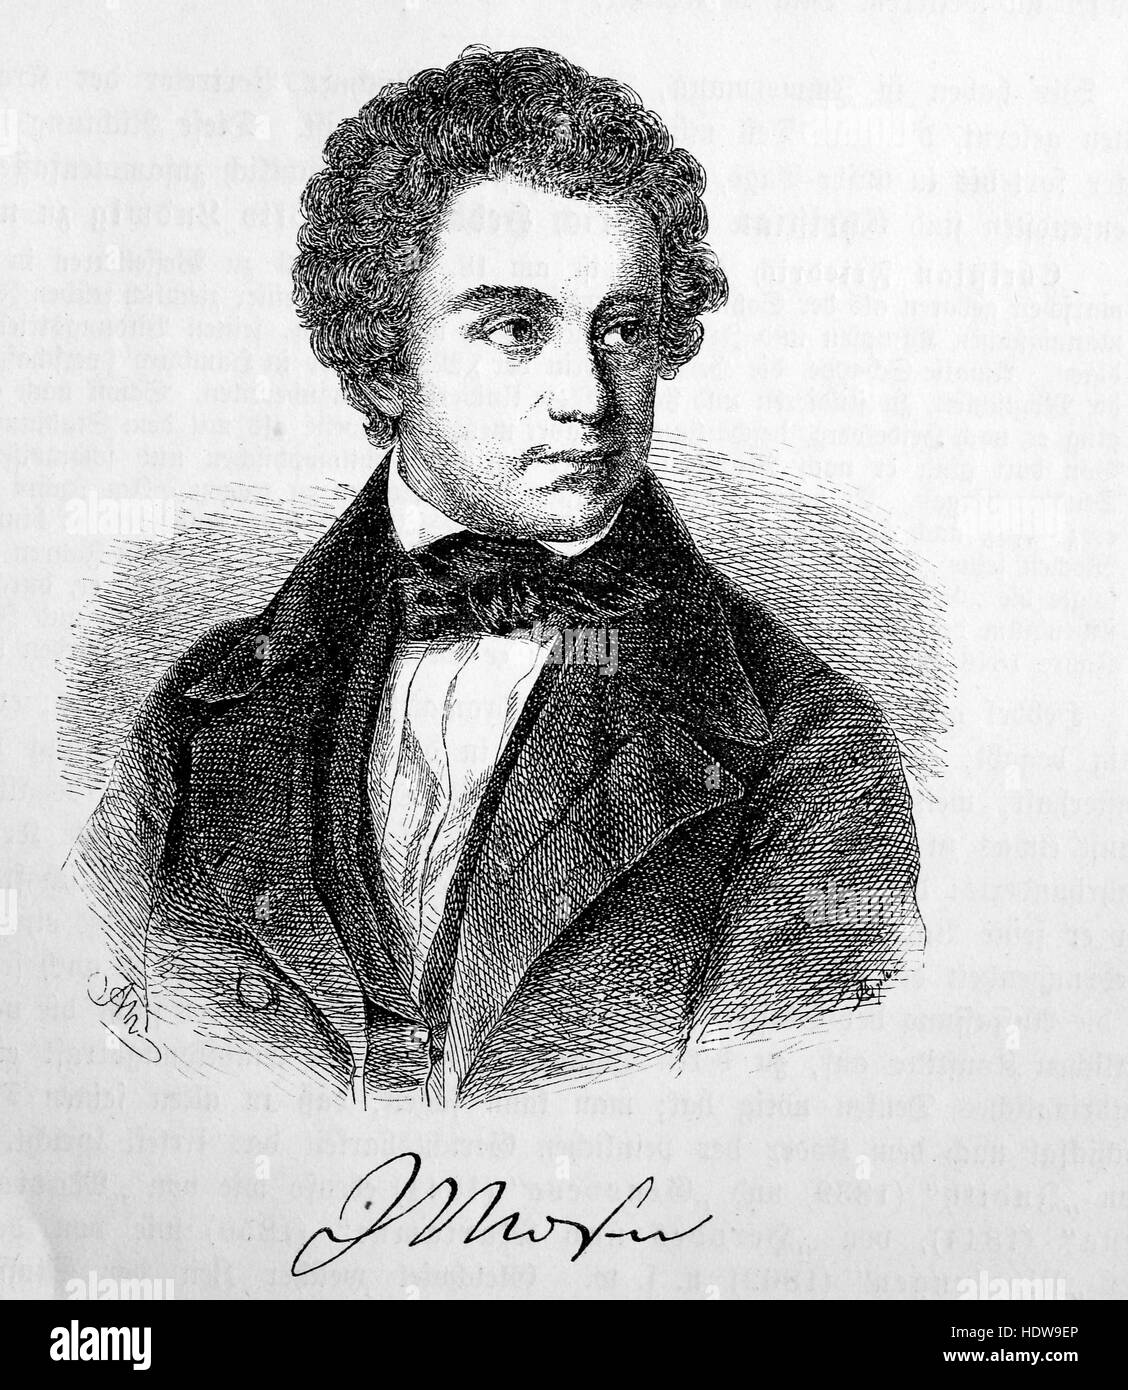 Julius Mosen, 1803-1867, a German poet and author of Jewish descent, woodcut from the year 1880 - Stock Image